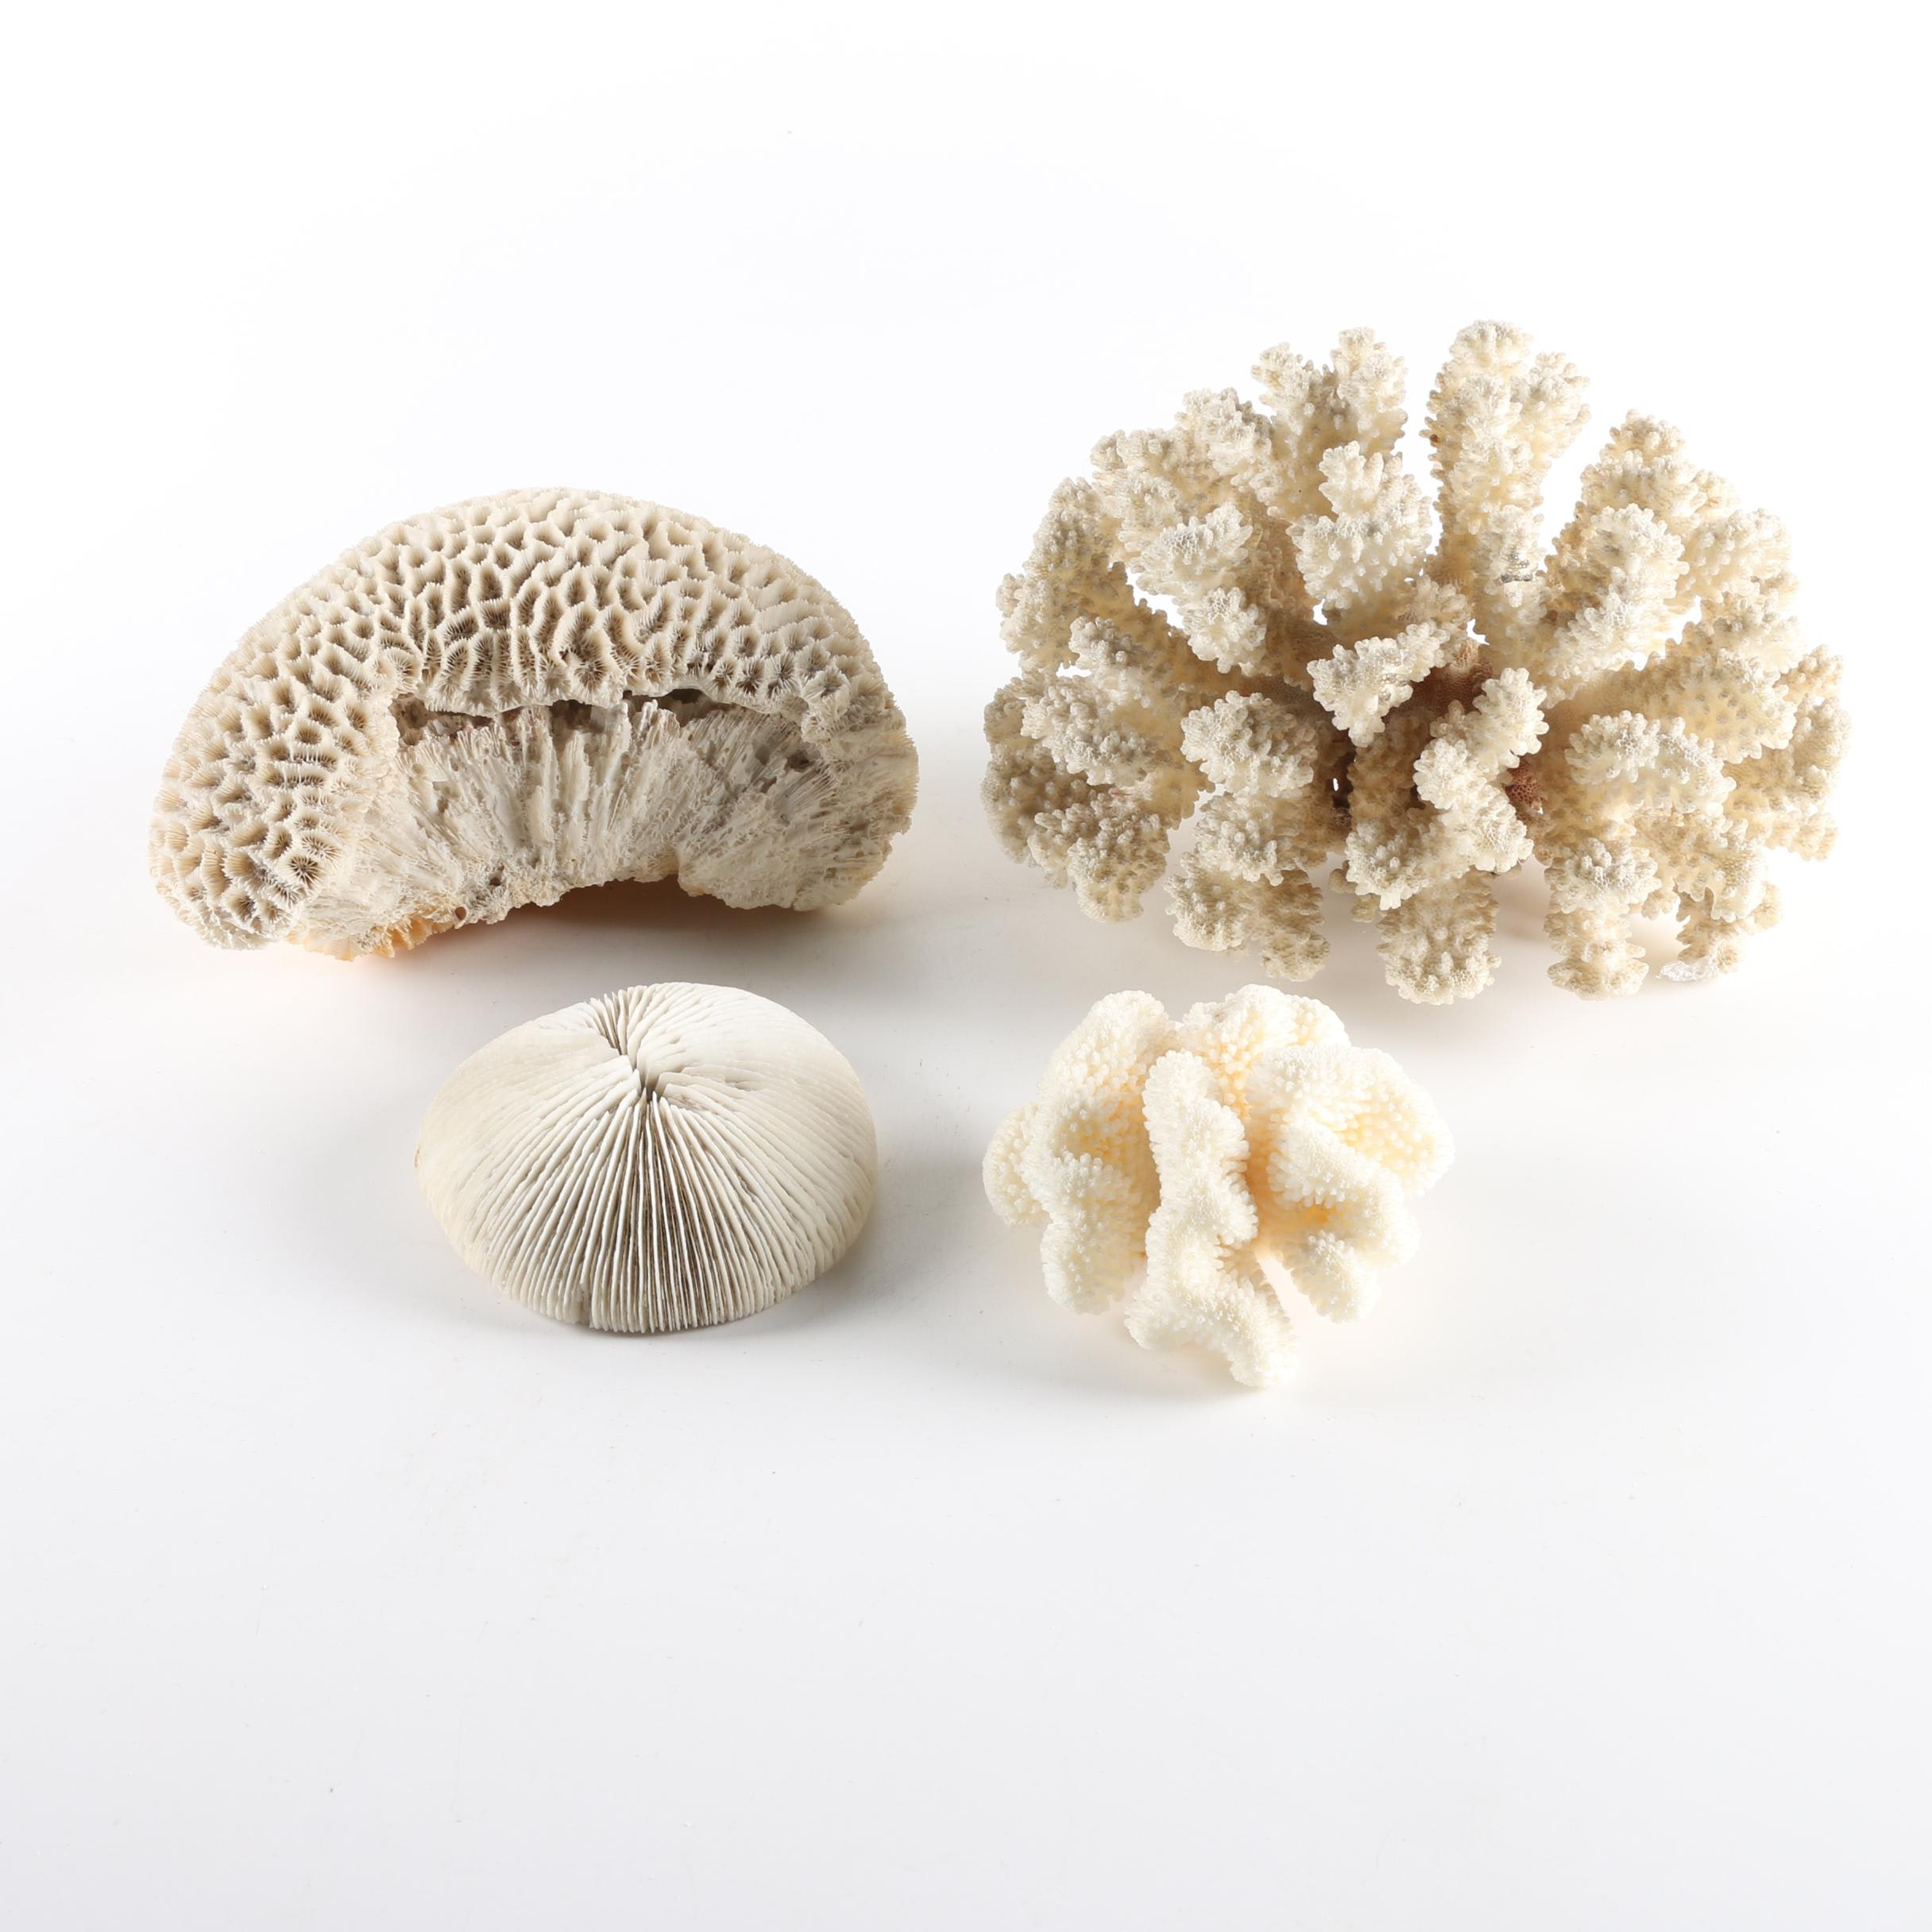 Recent Scleractinian Coral Specimens